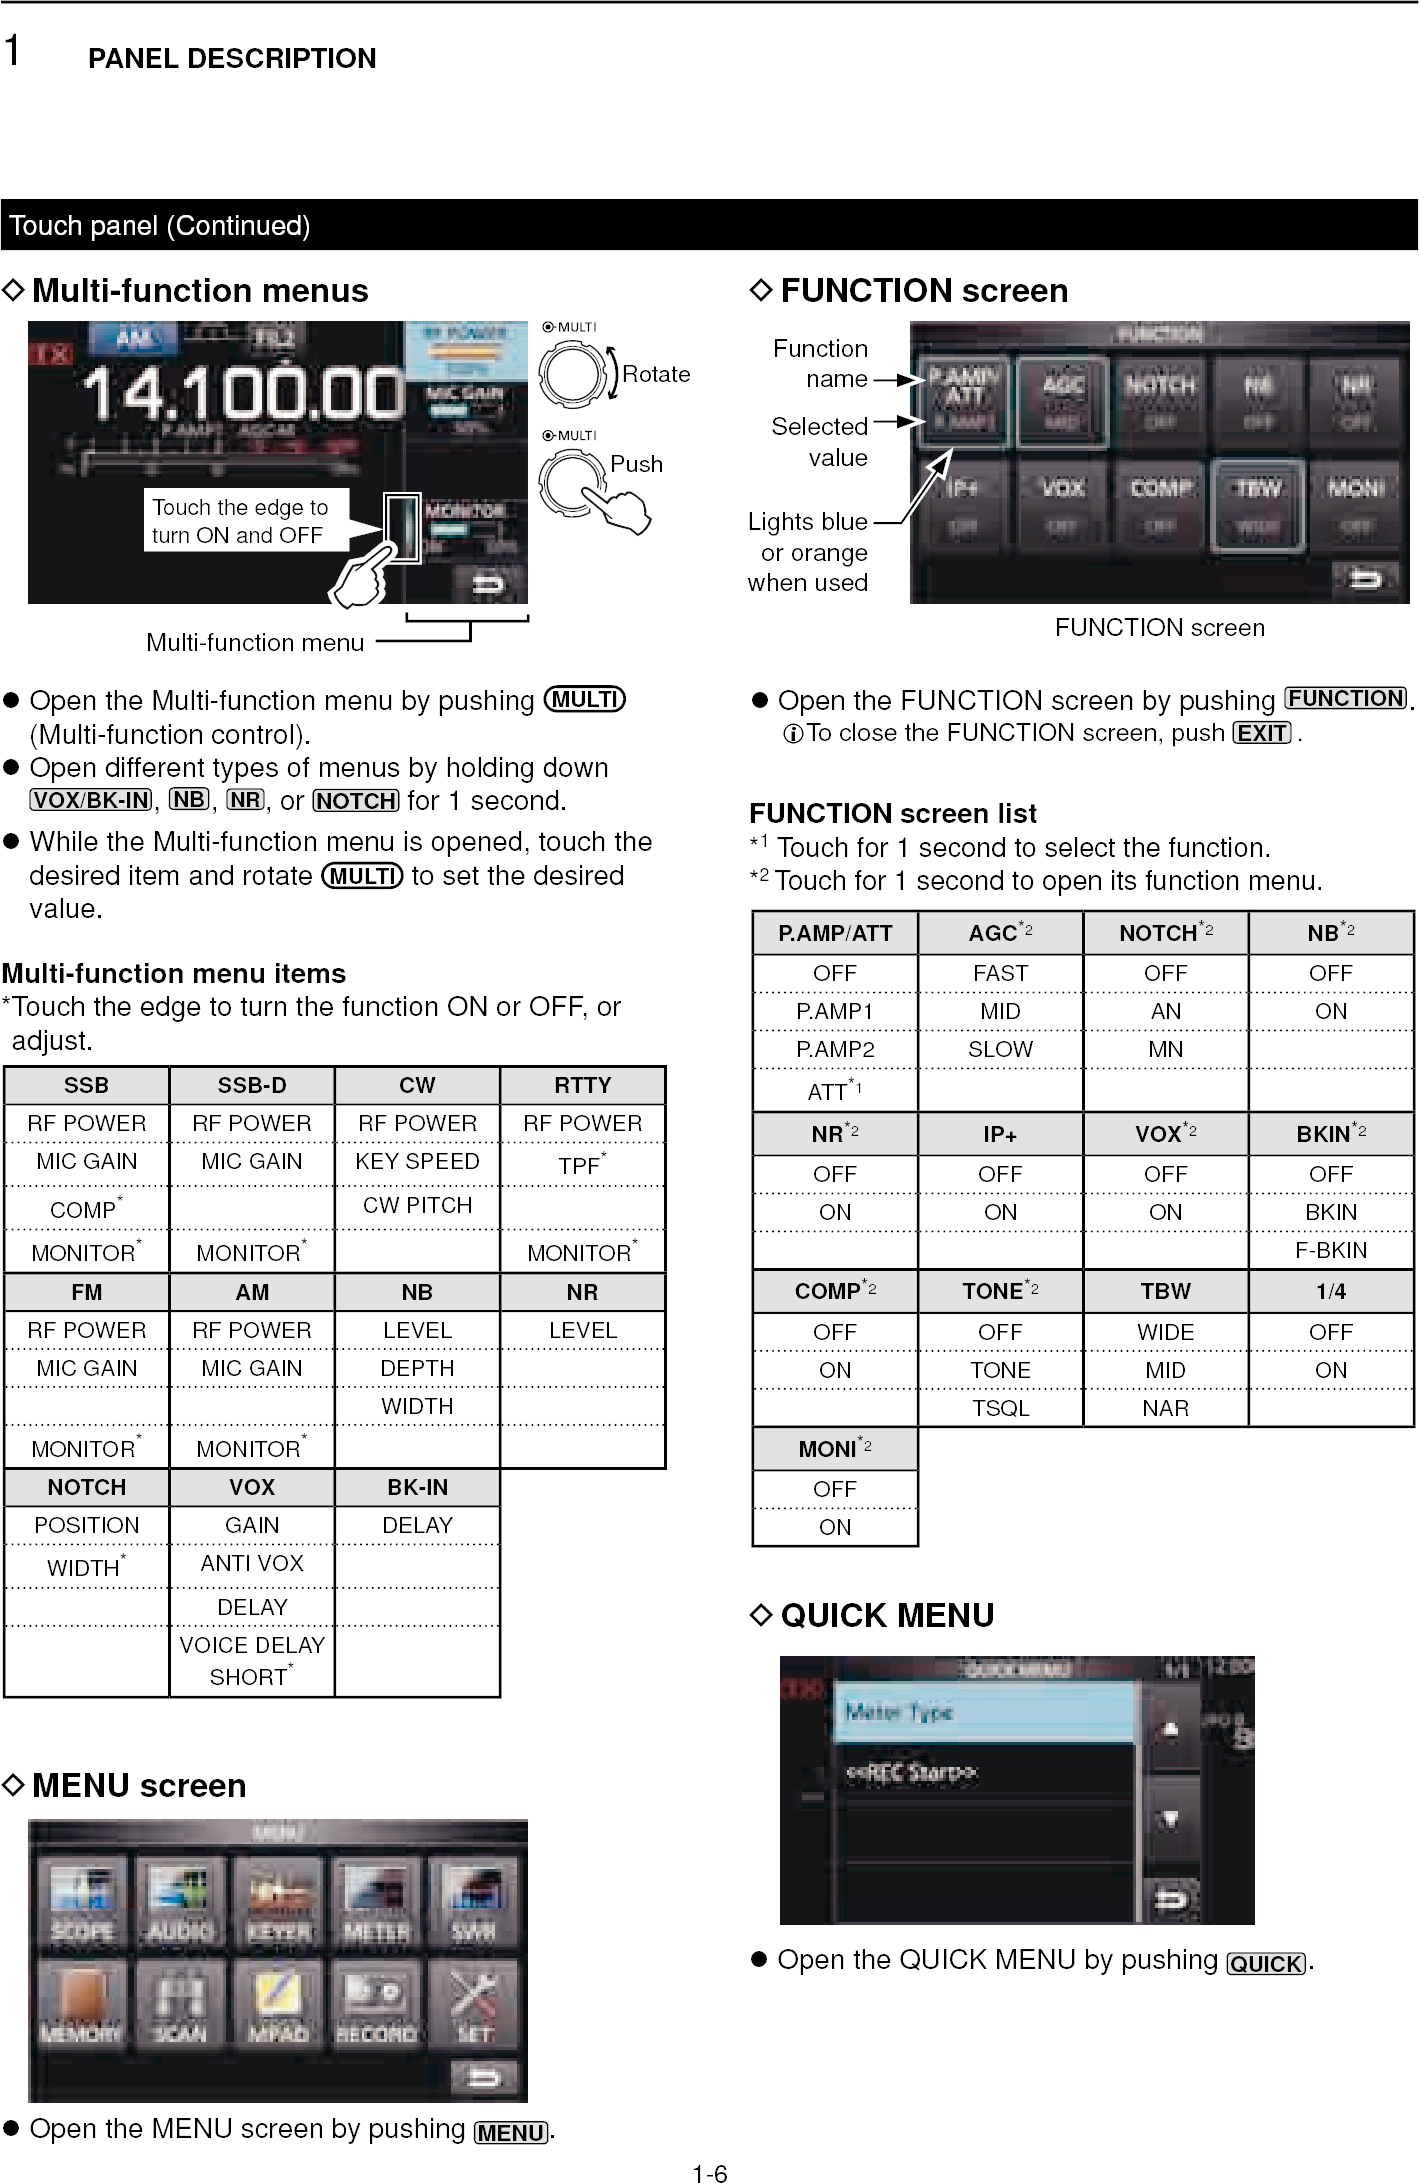 icom ic 7300 user manual